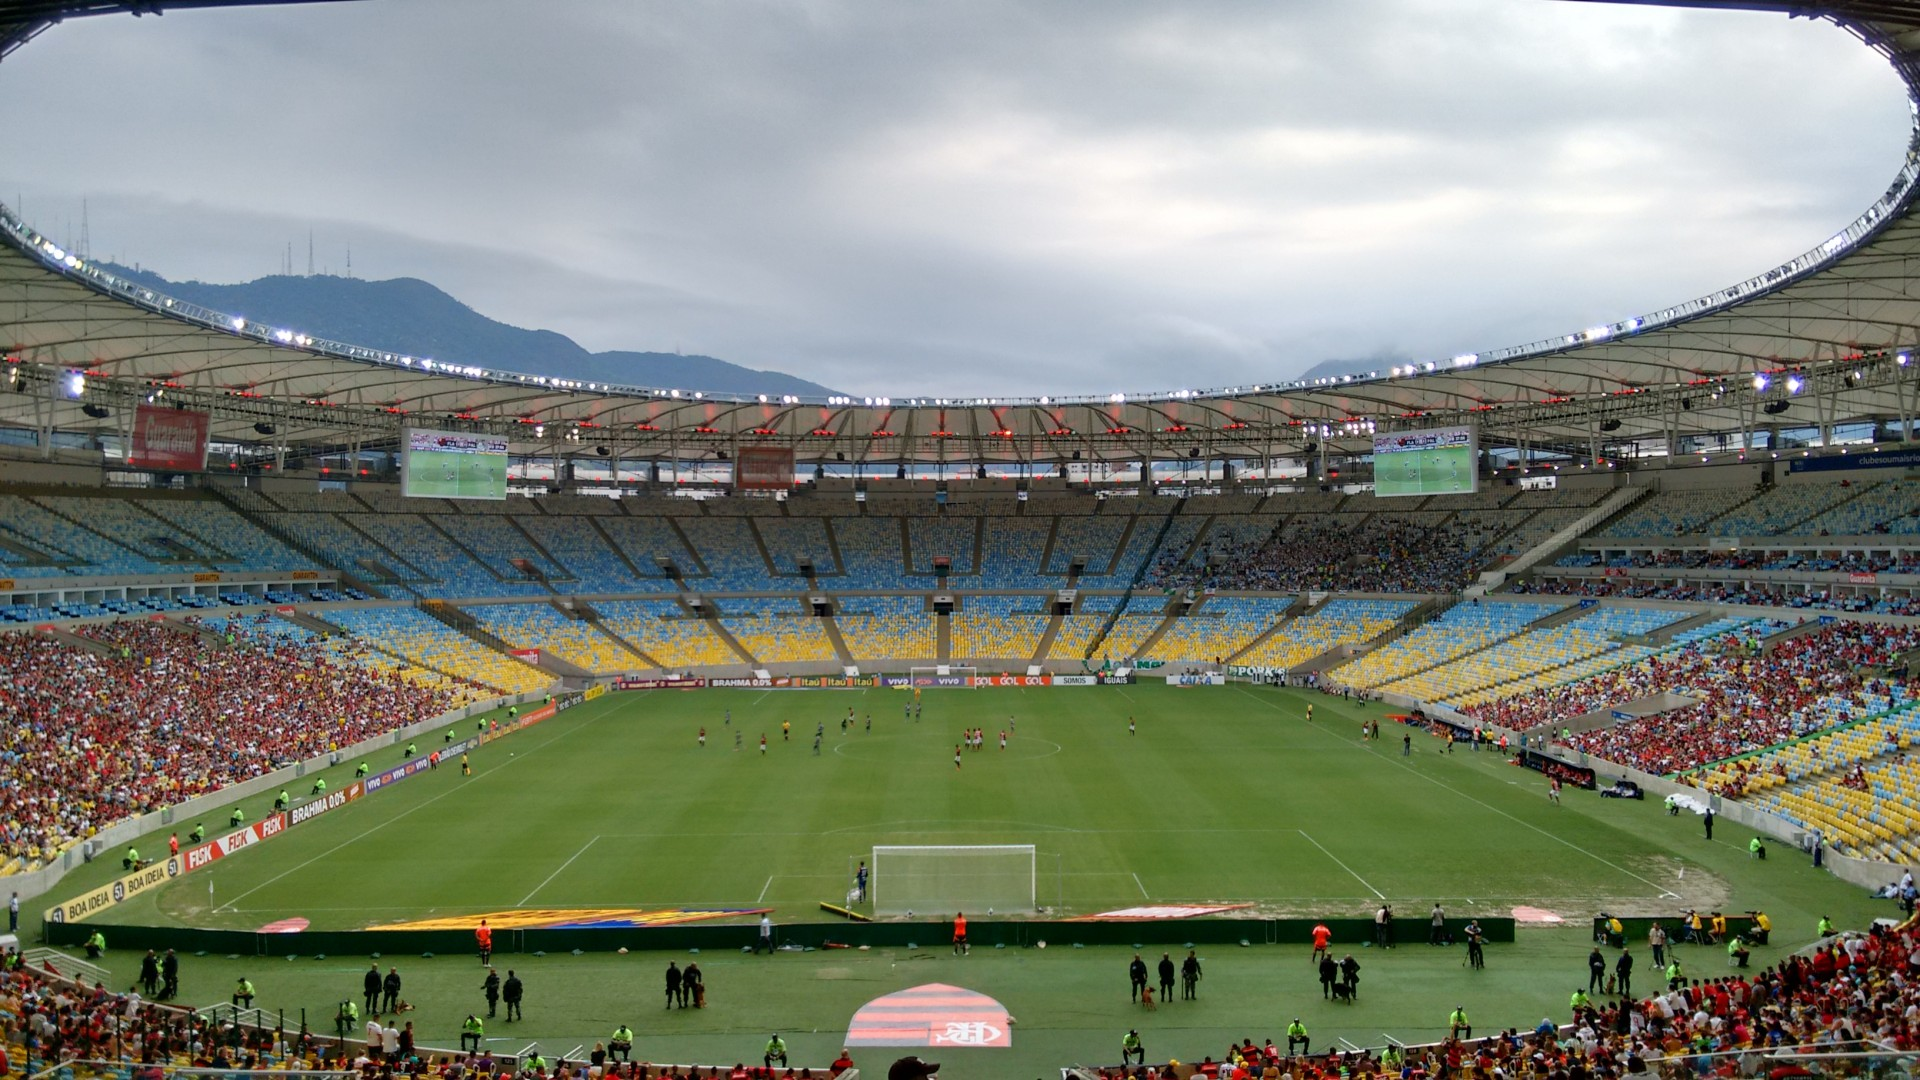 The Maracana, with almost nobody in it.